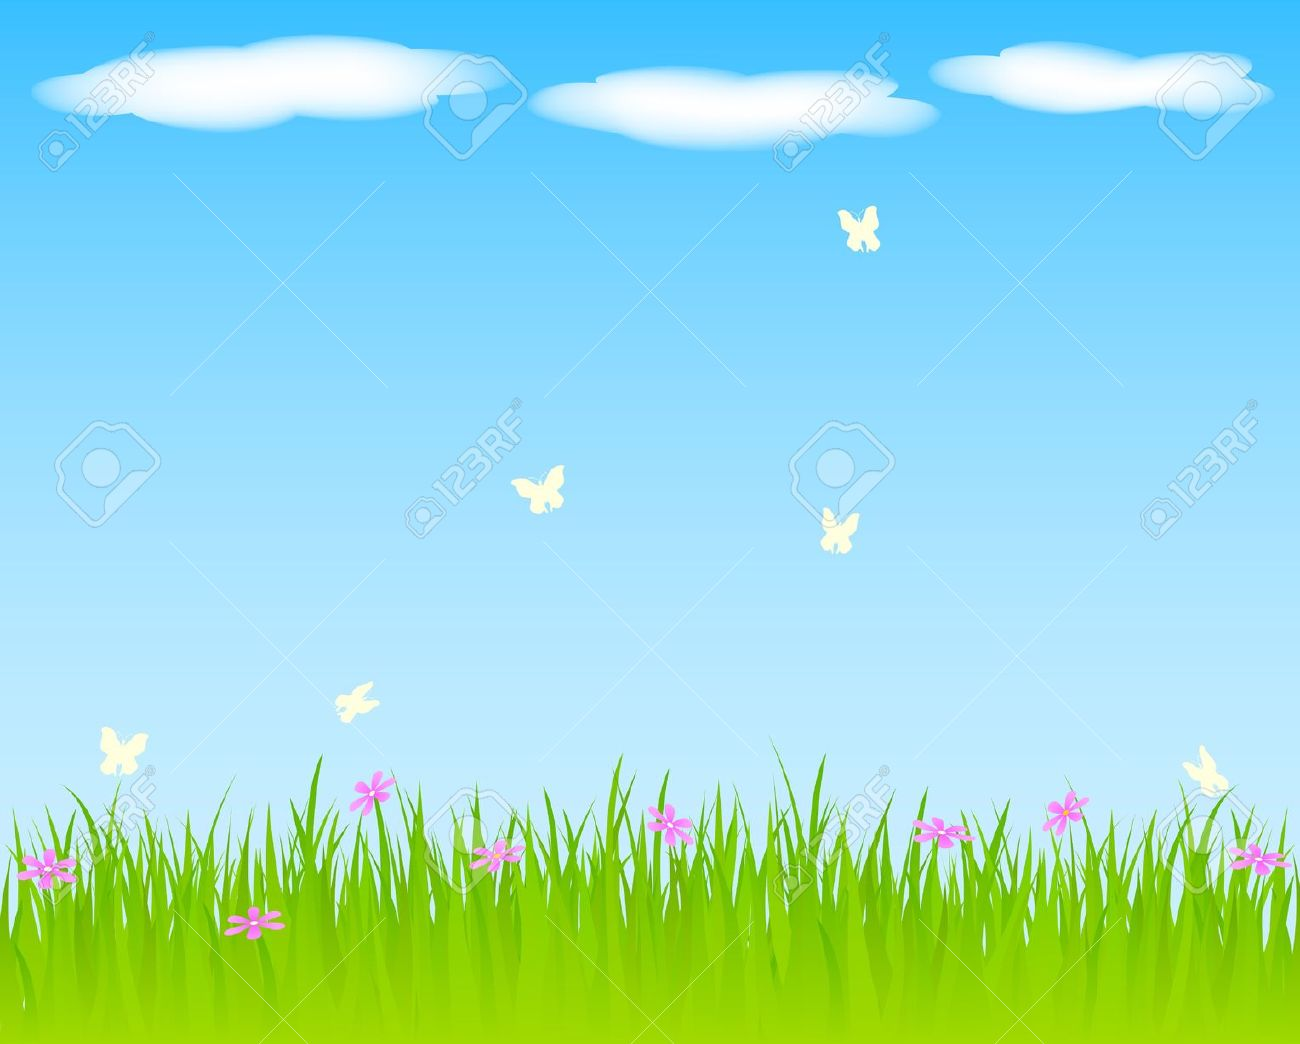 Free springtime cliparts download. Background clipart